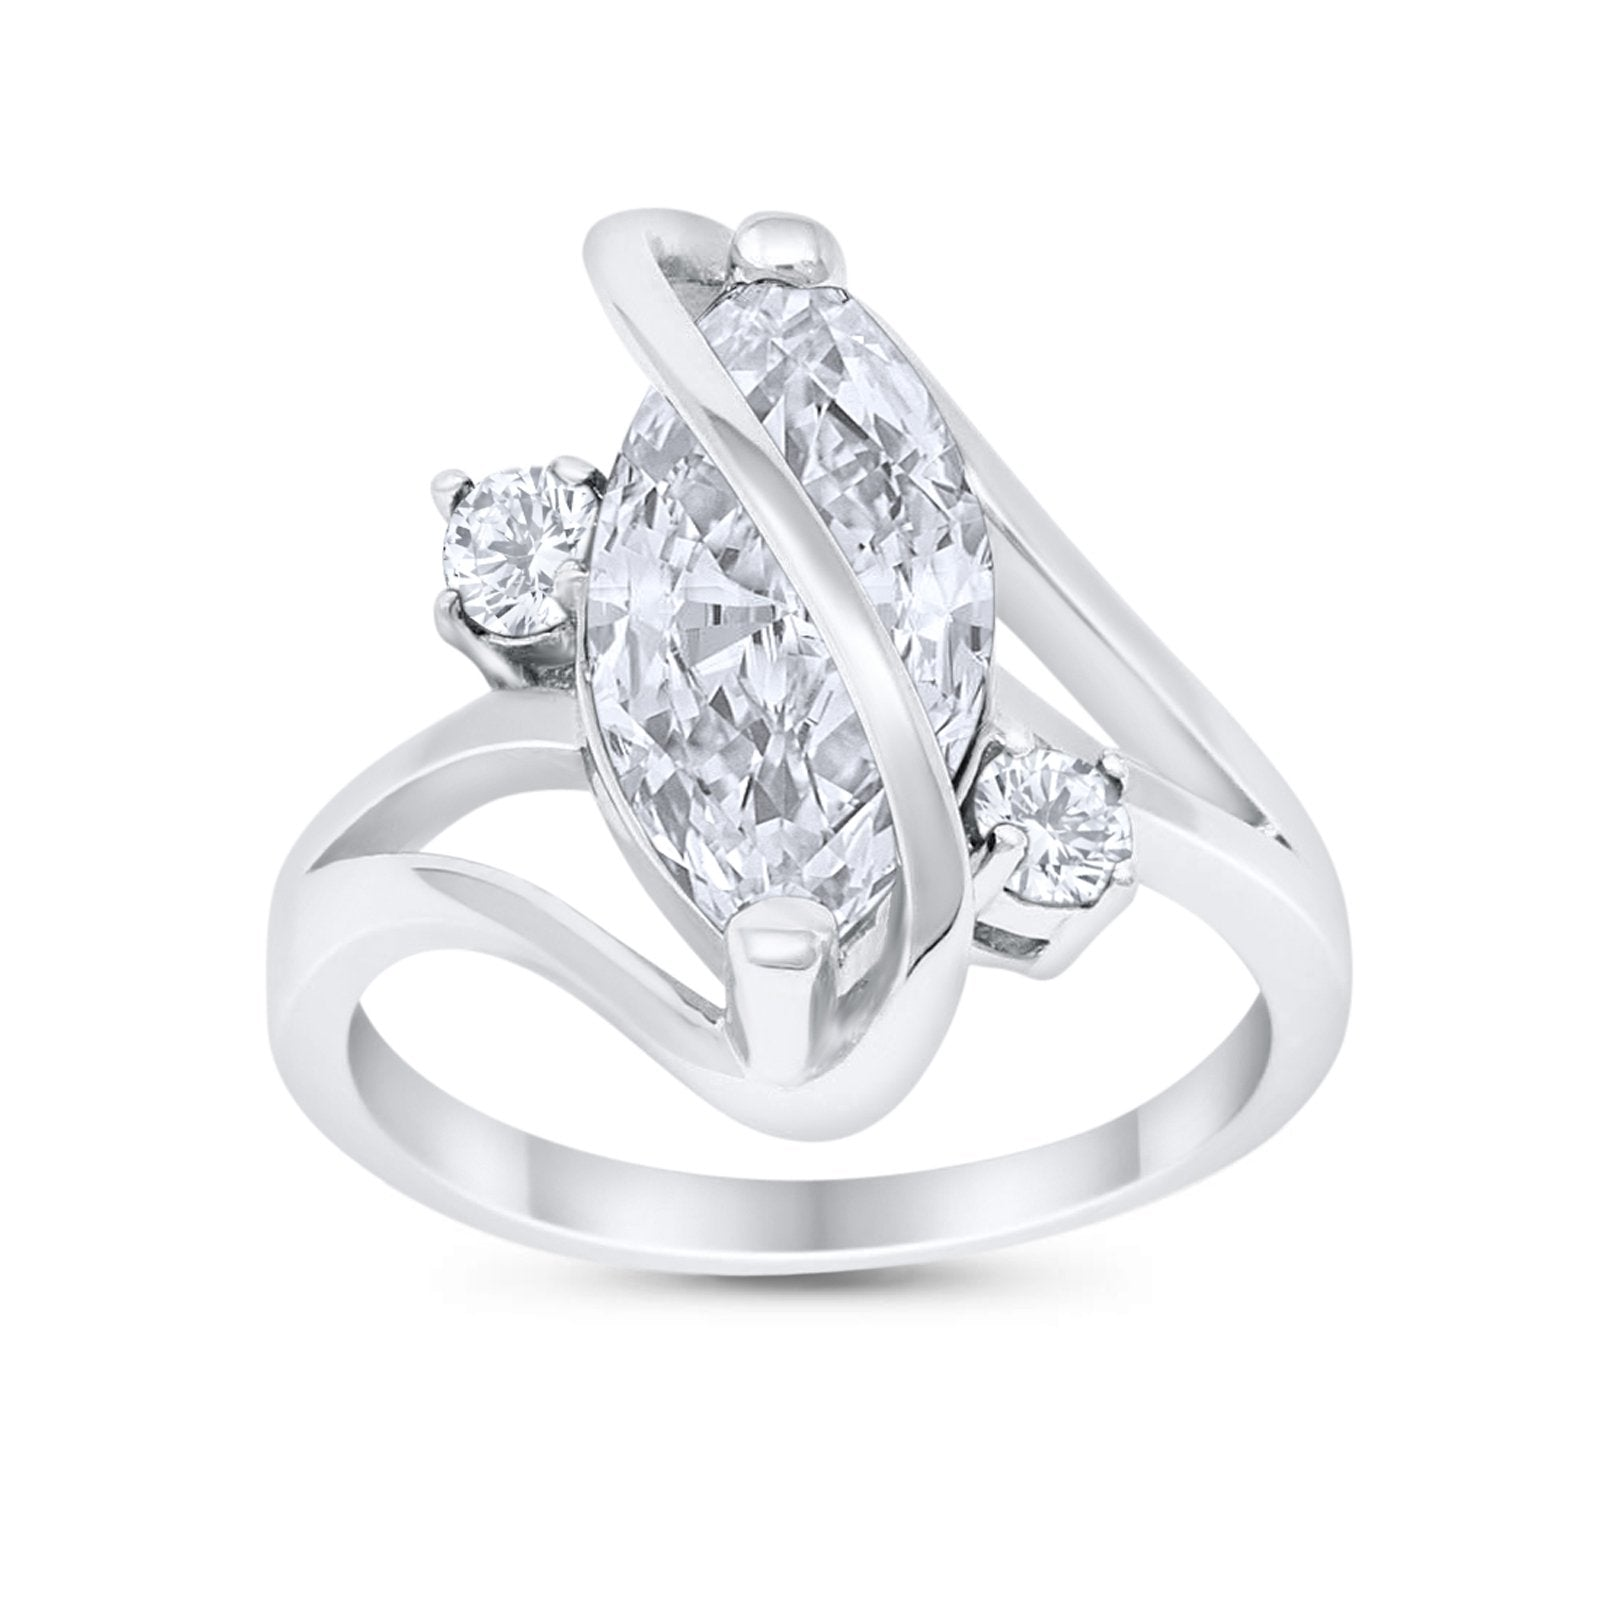 Swirl Fashion Ring Marquise Round Simulated Cubic Zirconia 925 Sterling Silver